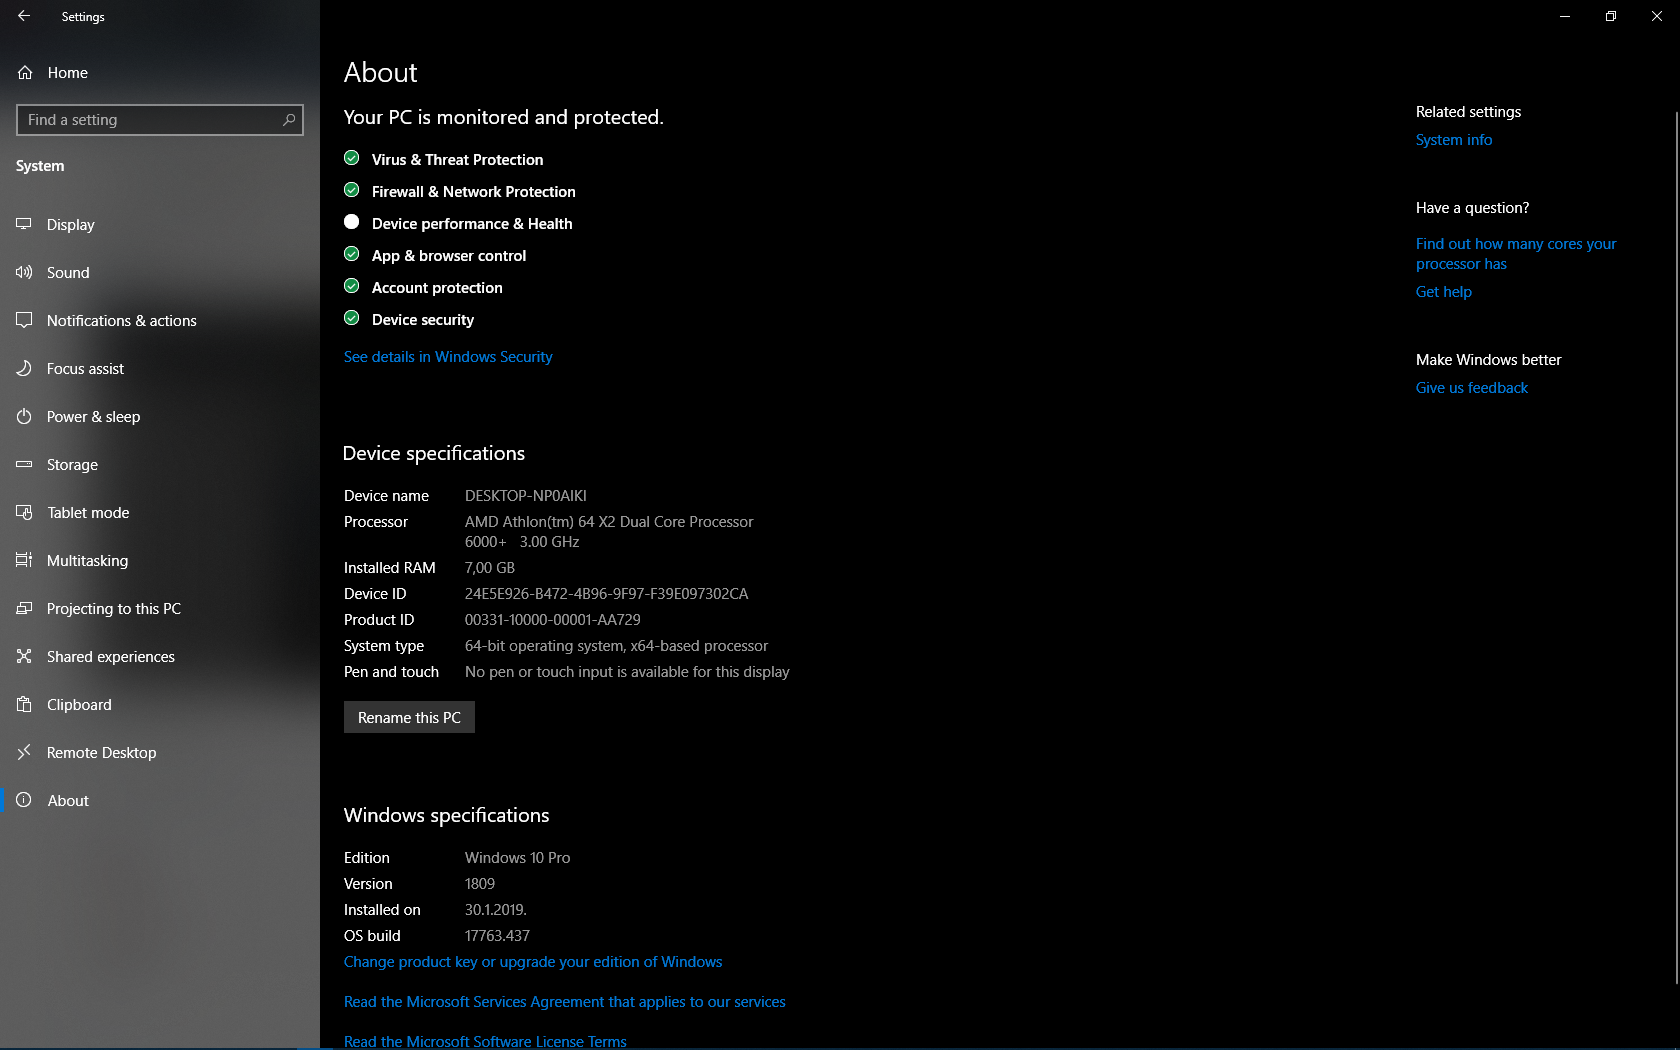 Windows 10 Pro problems  Some settings are managed by your